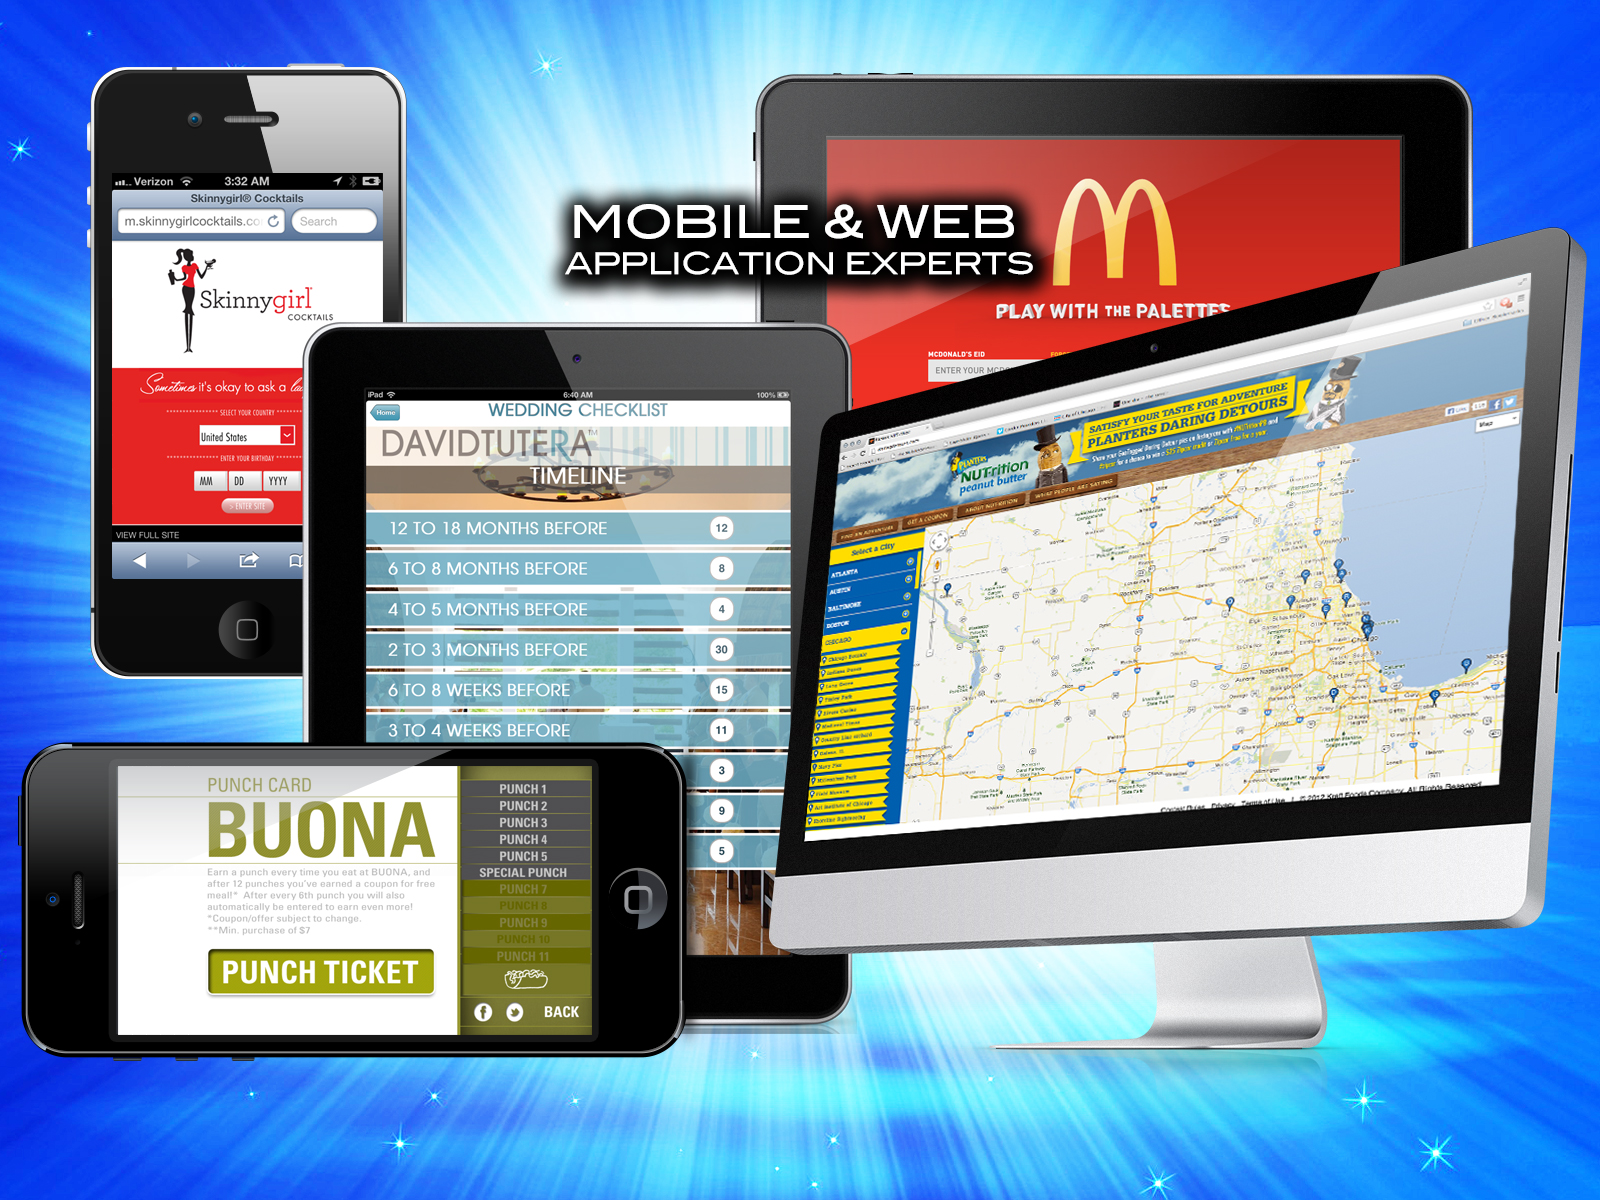 Mobile and Web Experts